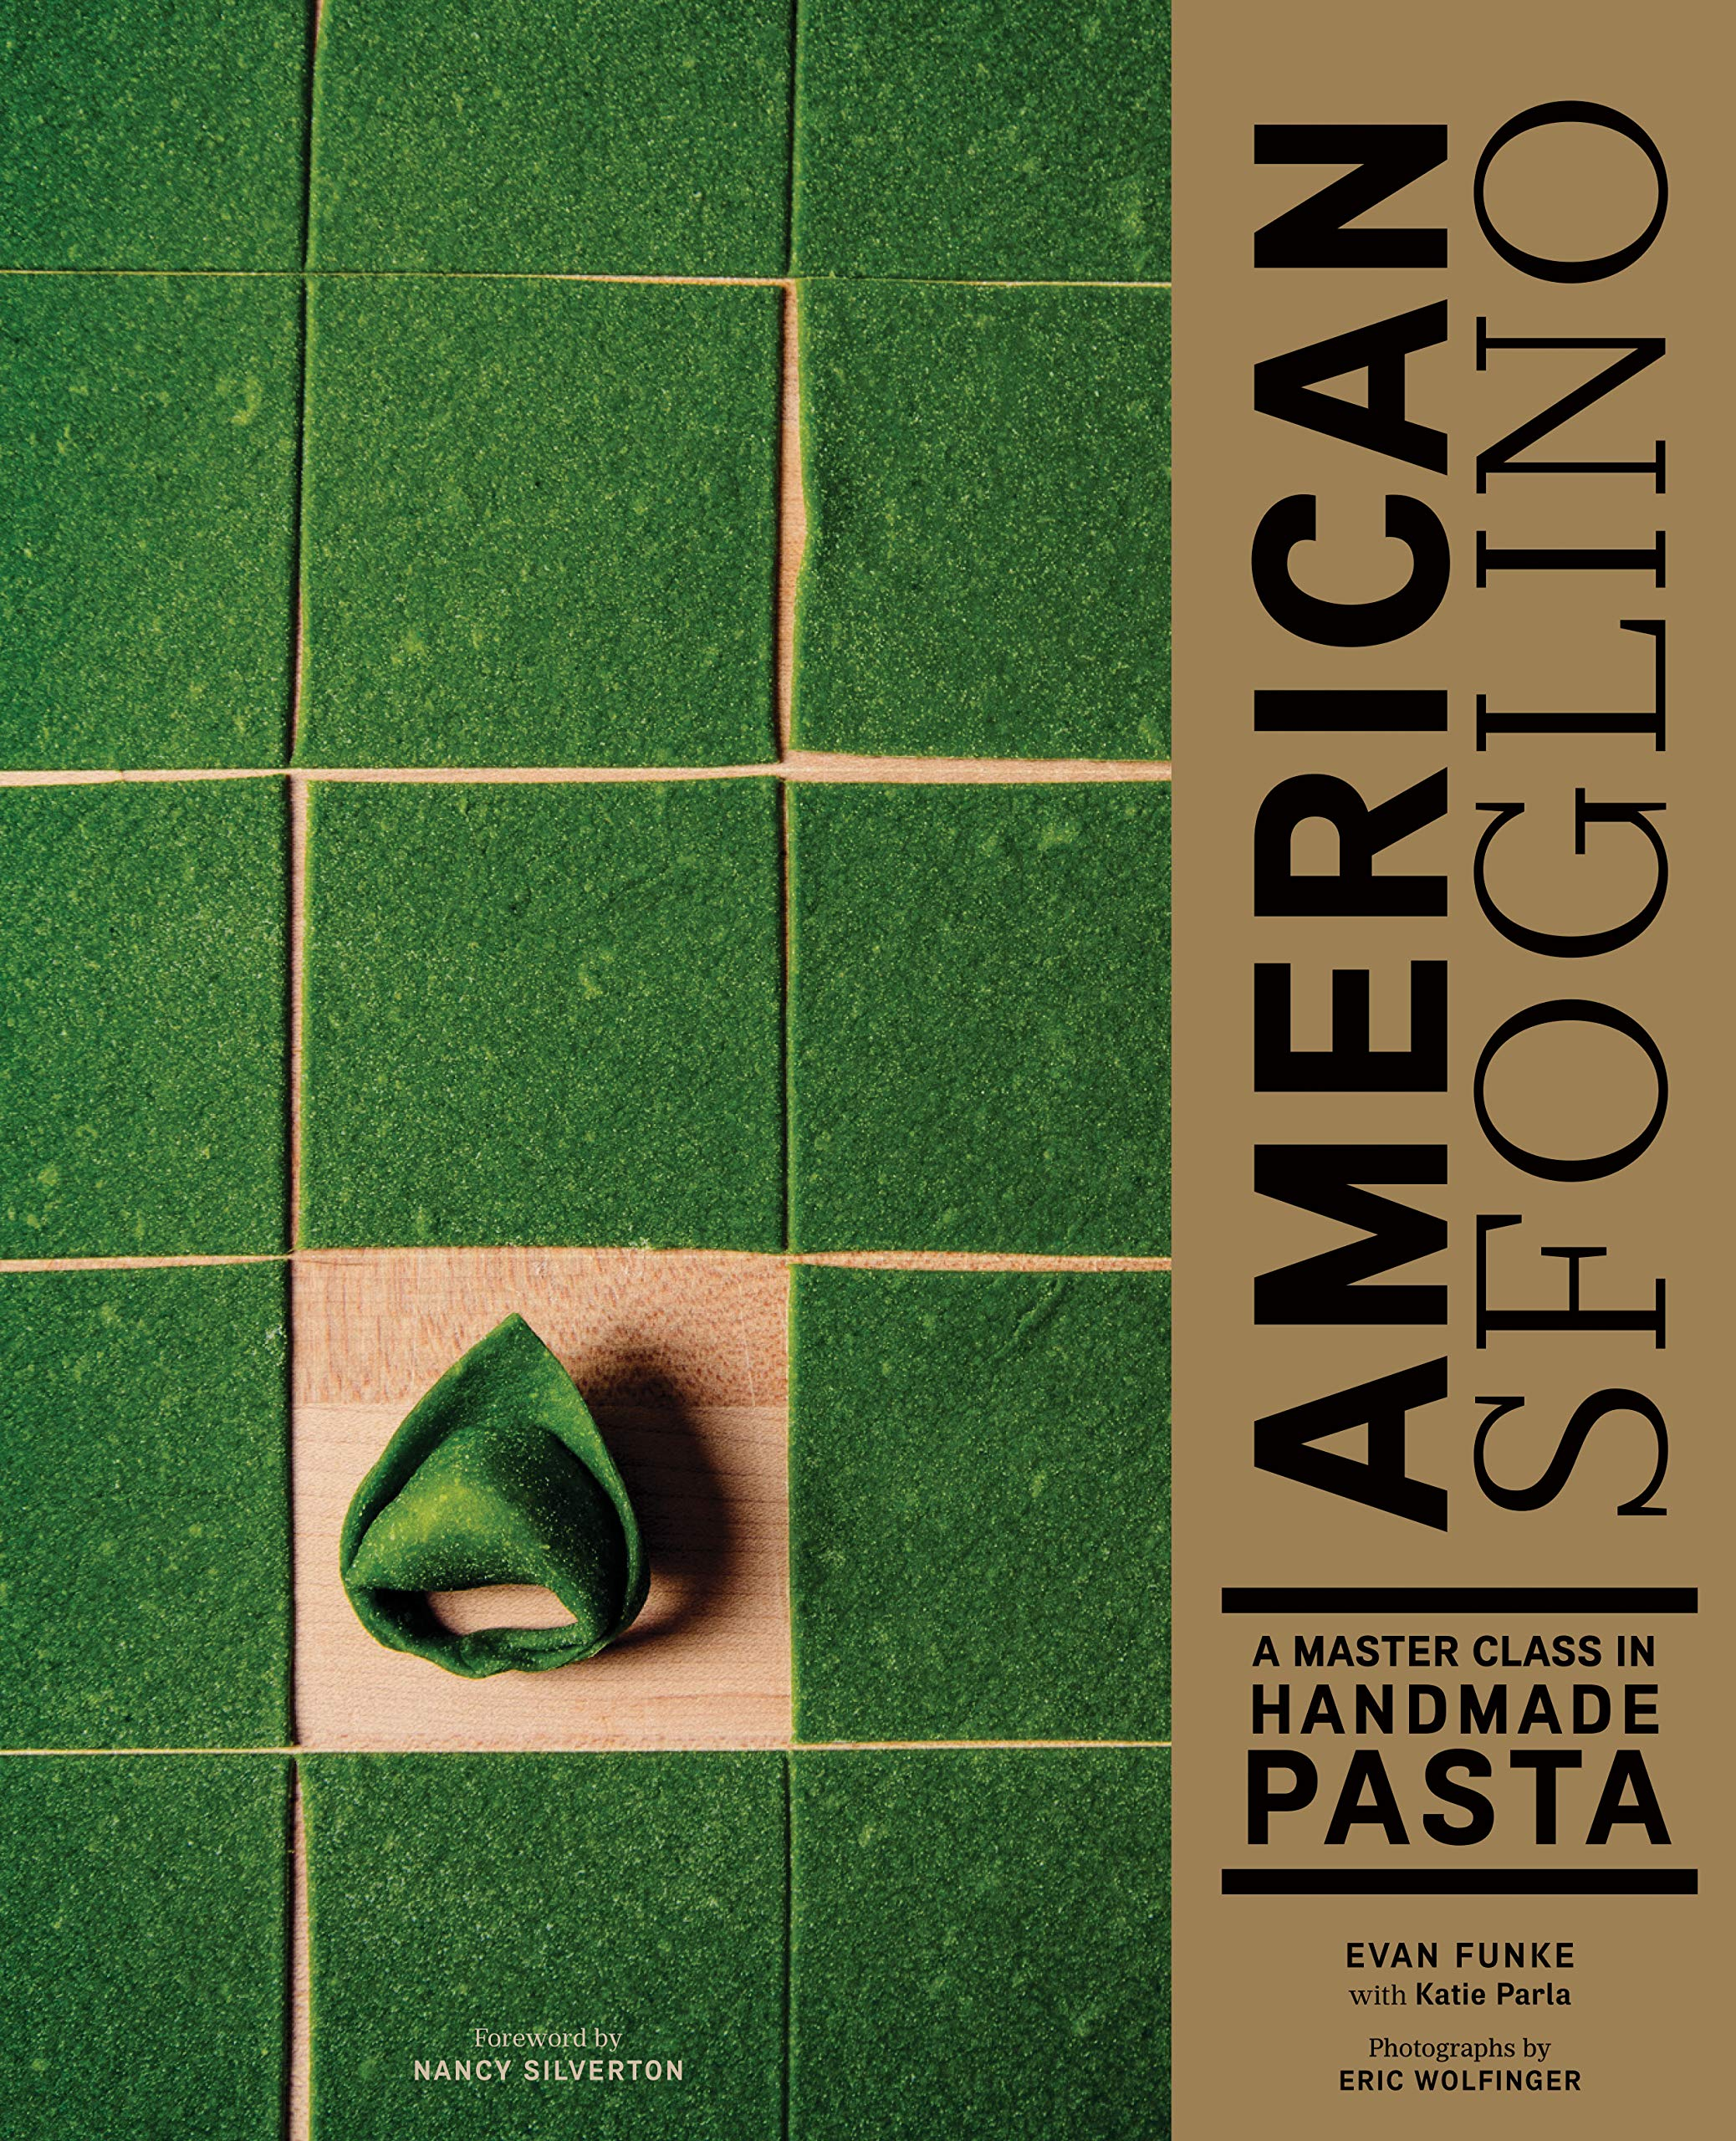 American Sfoglino: A Master Class in Handmade Pasta (Pasta Cookbook, Italian Cooking Books, Pasta and Noodle Cooking) by Chronicle Books